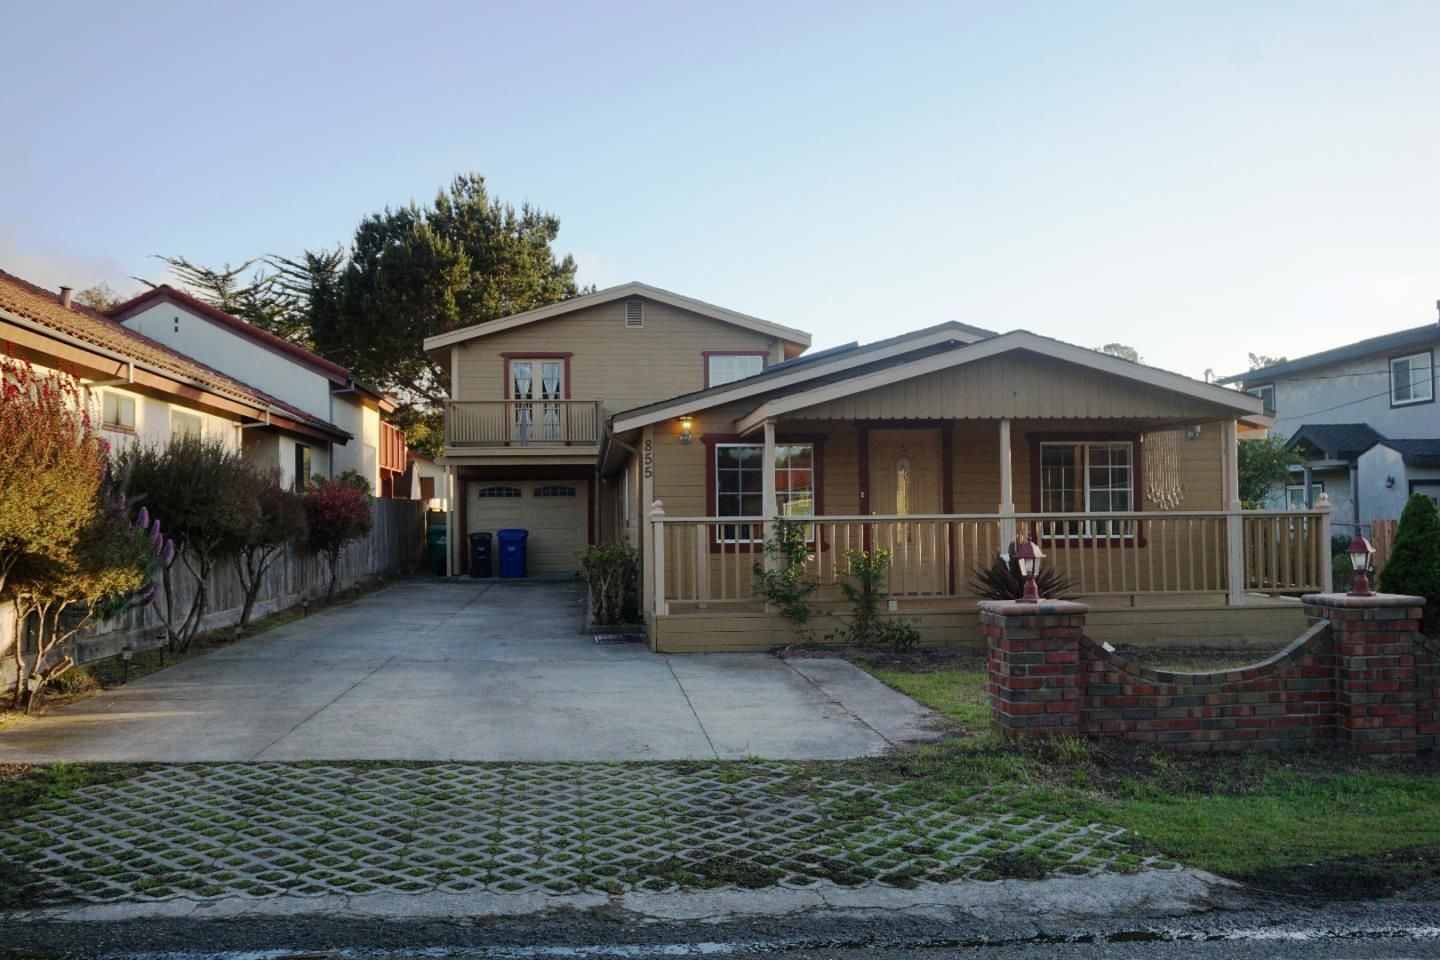 View property details for 855 Maple St, Pacific Grove, CA. 855 Maple St is a Single Family property with 4 bedrooms and 2 total baths for sale at $1,045,000. MLS# 81577467.